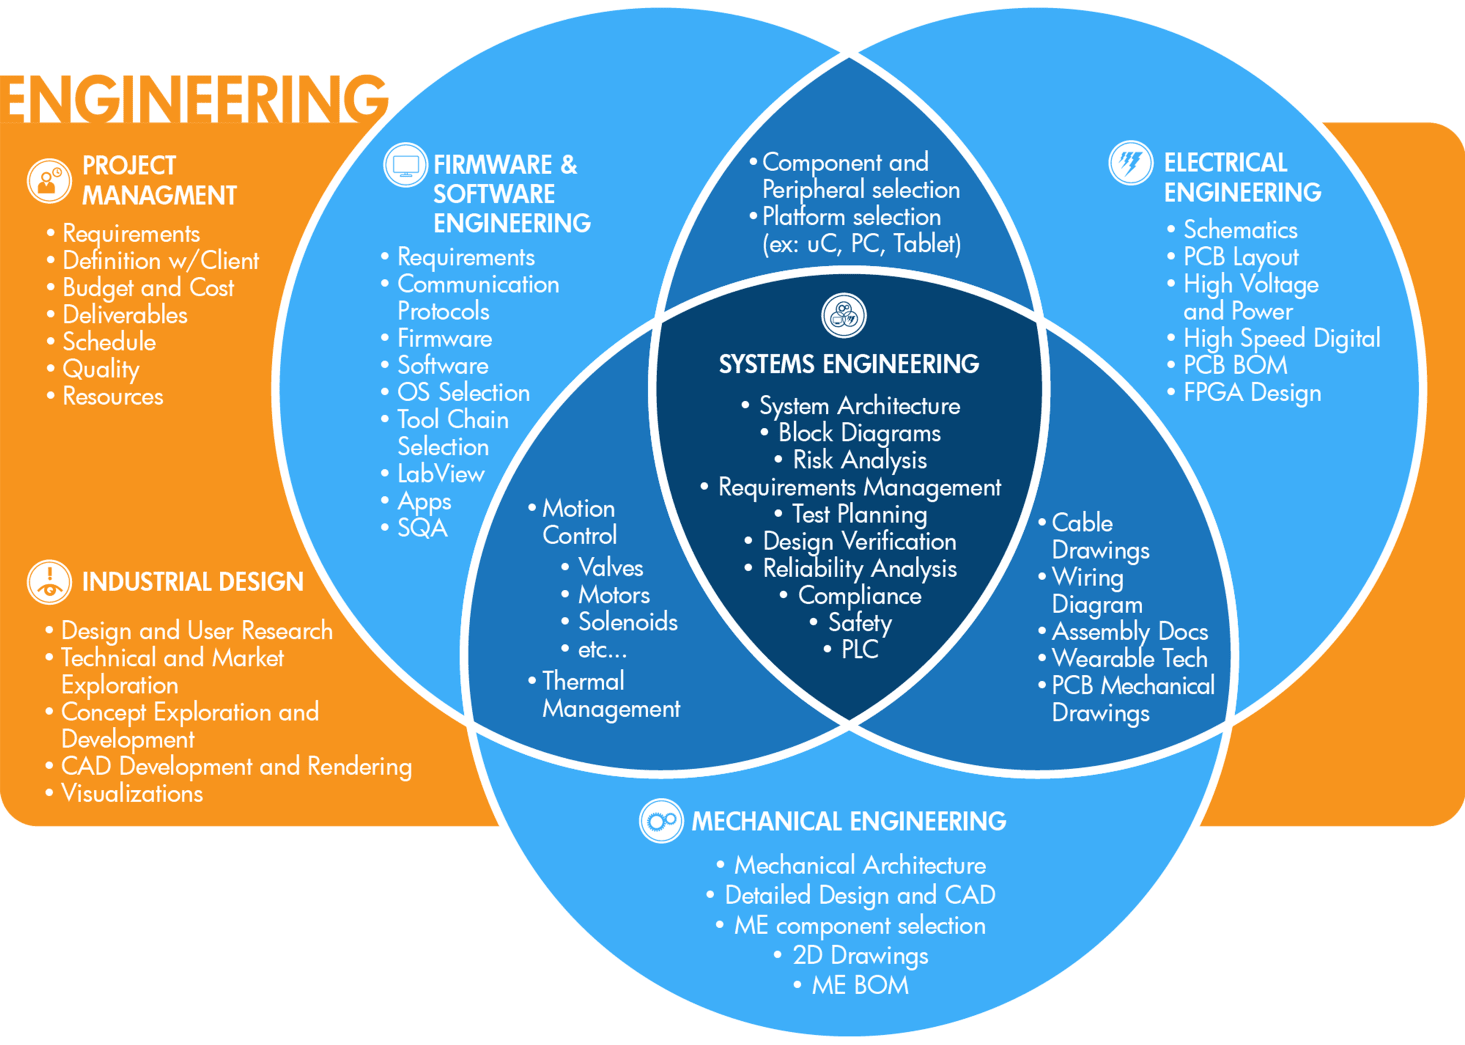 Understand Systems Engineering and how it fits into Product Development in this Venn Diagram